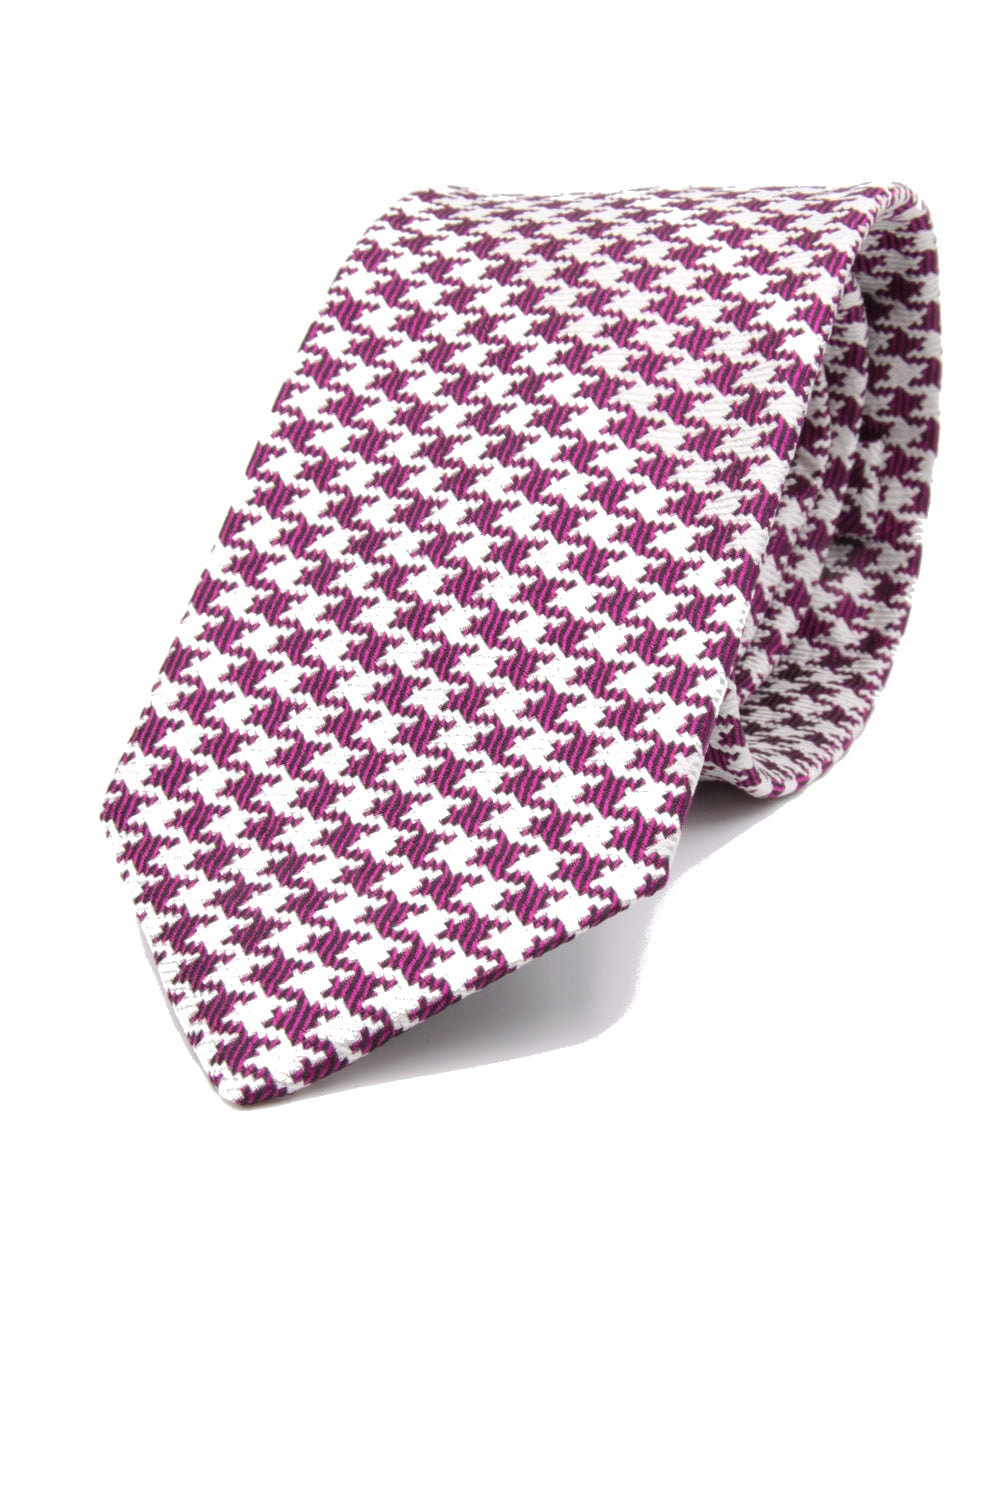 drake's Magenta and white houndstooth tie